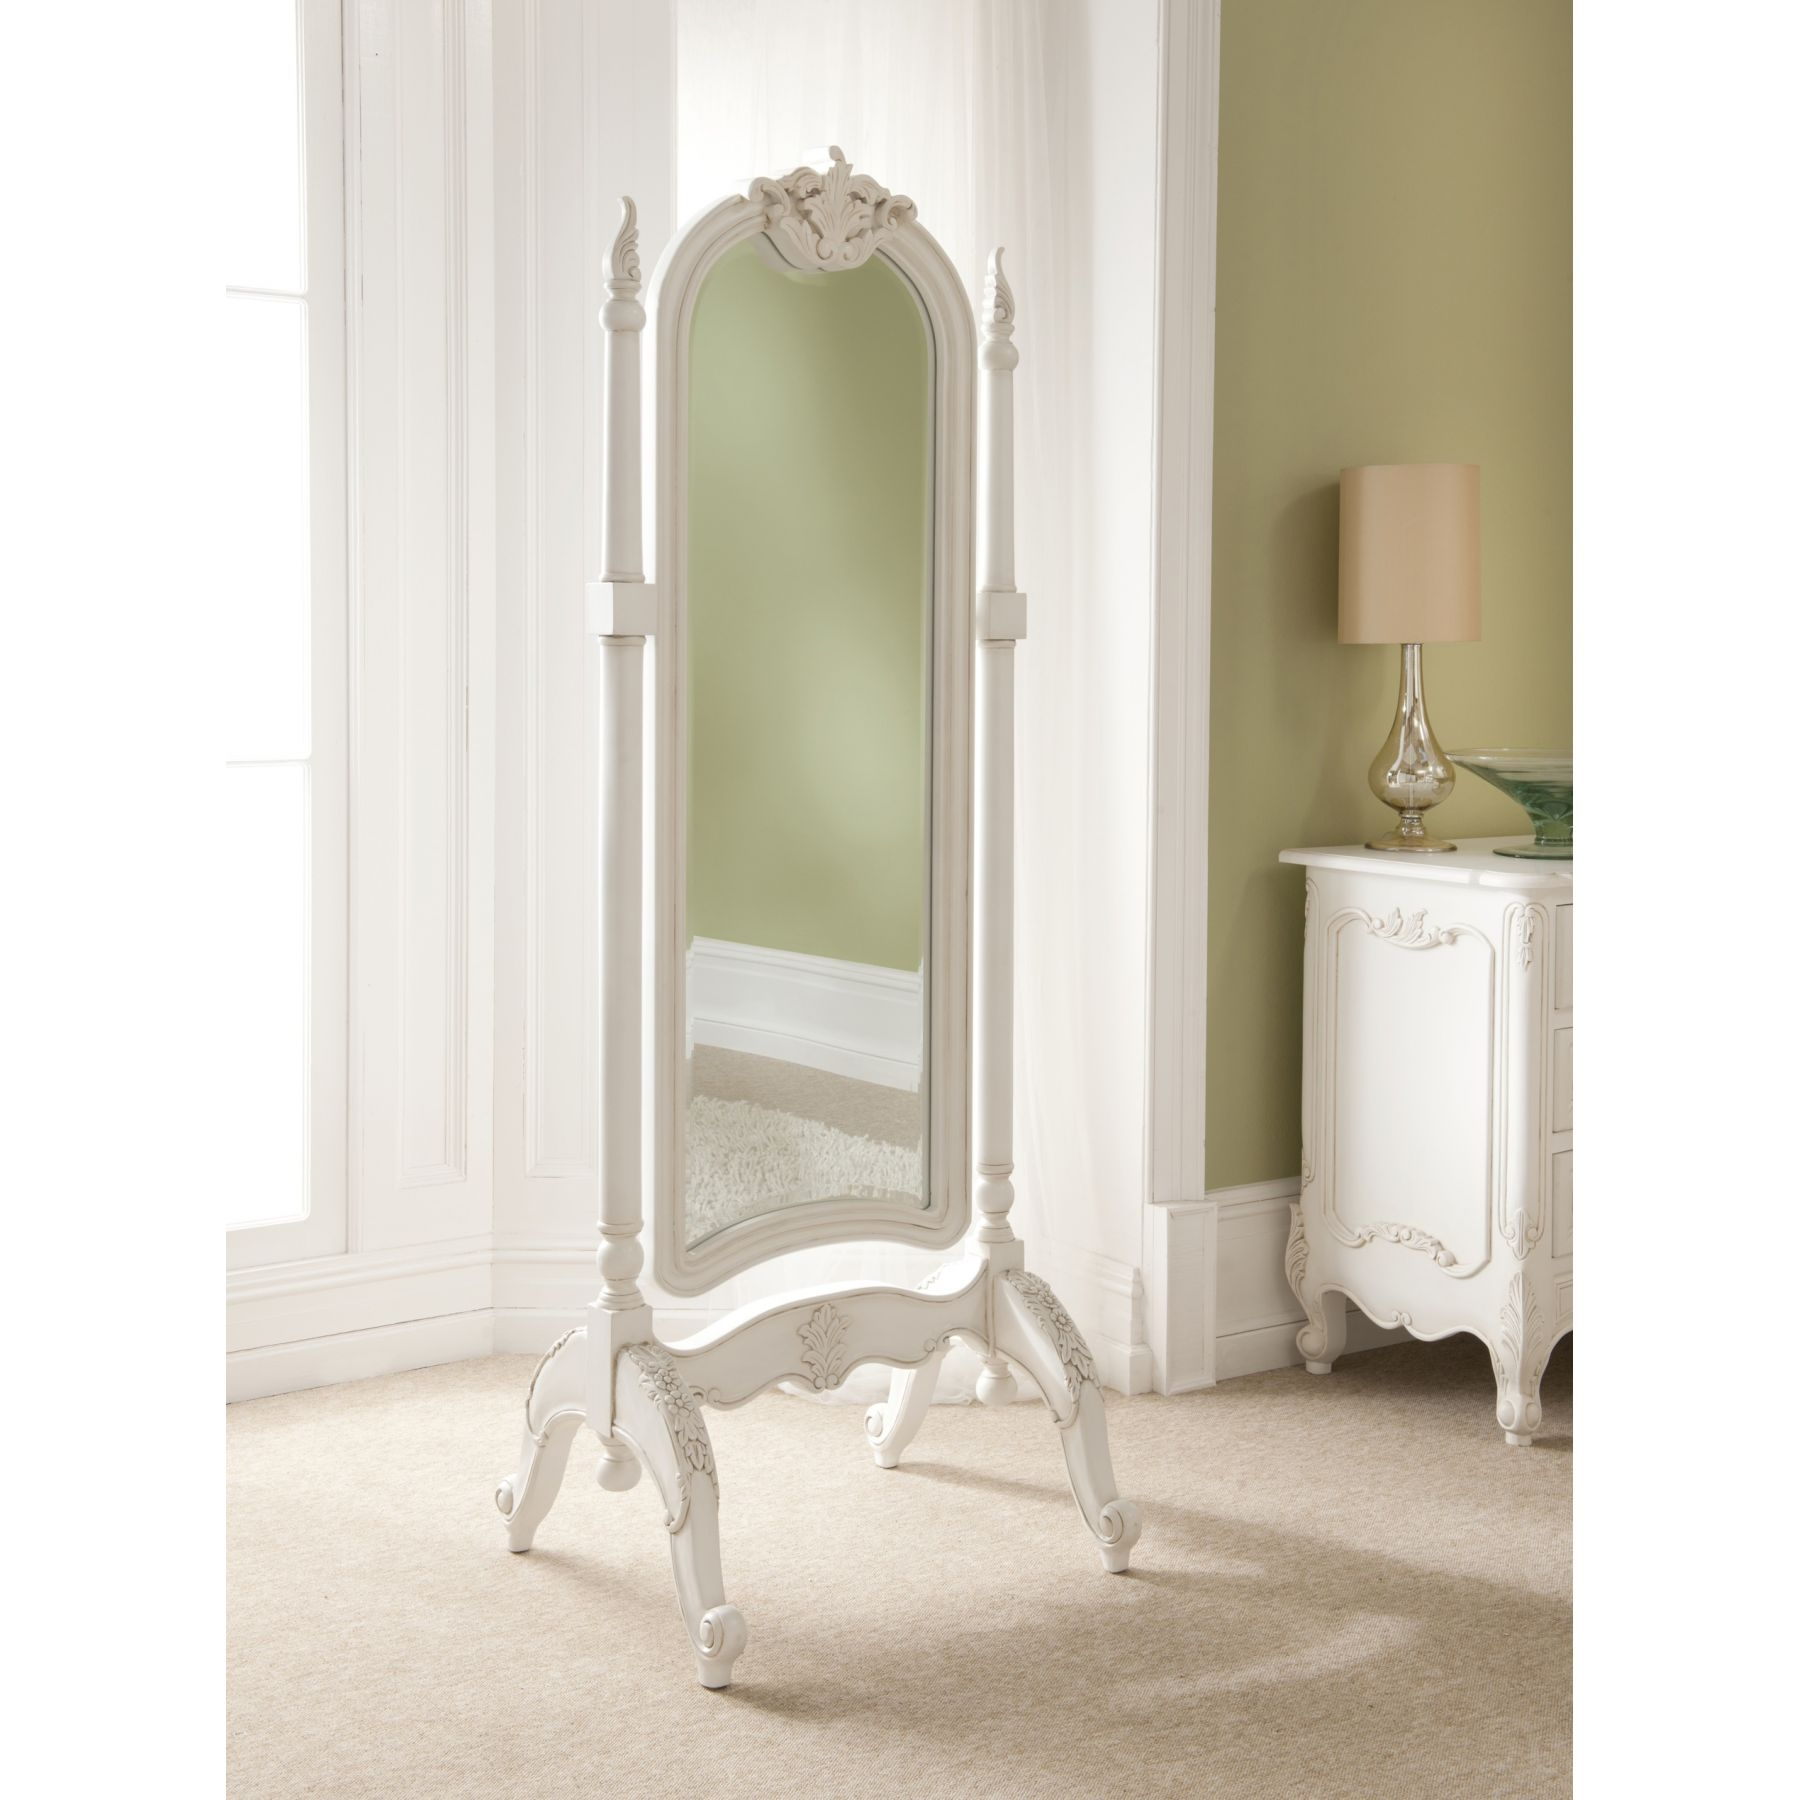 Cheval Mirror Cheval Mirror Pinterest Cheval Mirror In French Floor Standing Mirror (View 10 of 15)